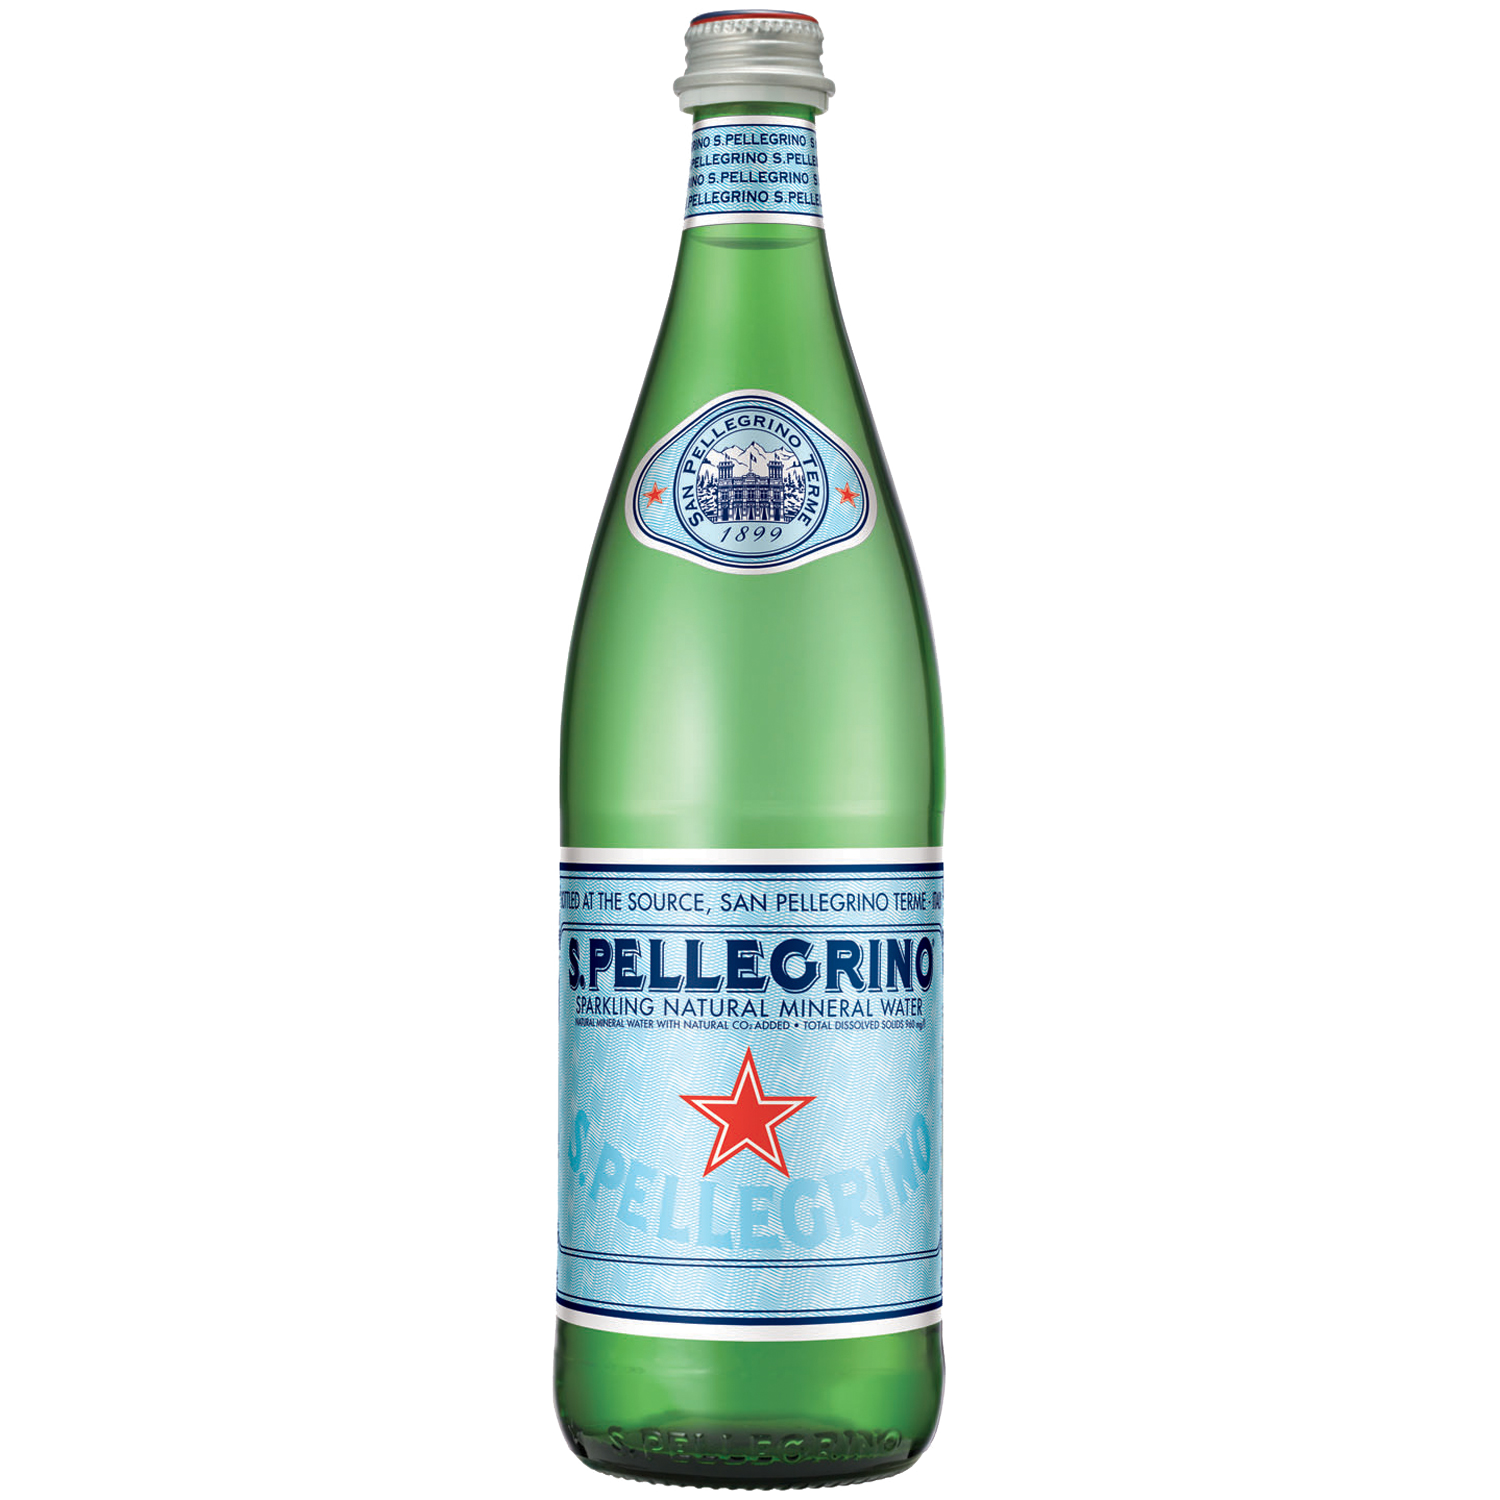 San pellegrino 50cl